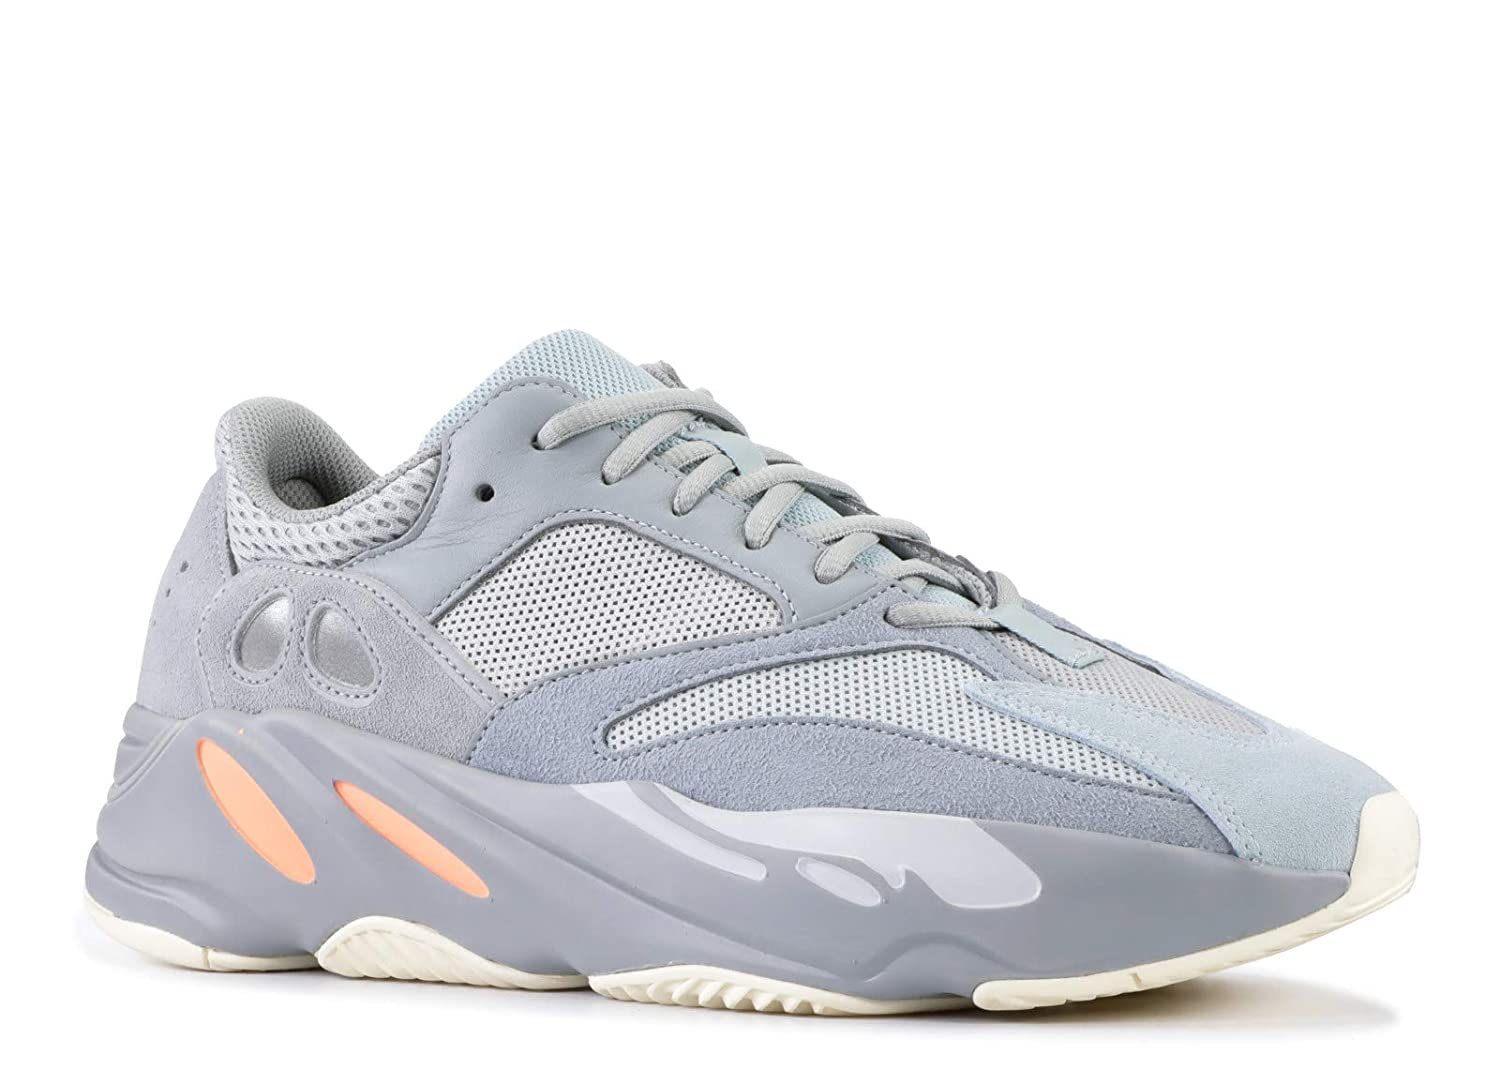 new arrival 3941b e1912 Amazon.com   adidas Yeezy Boost 700 Inertia 6   Fashion Sneakers